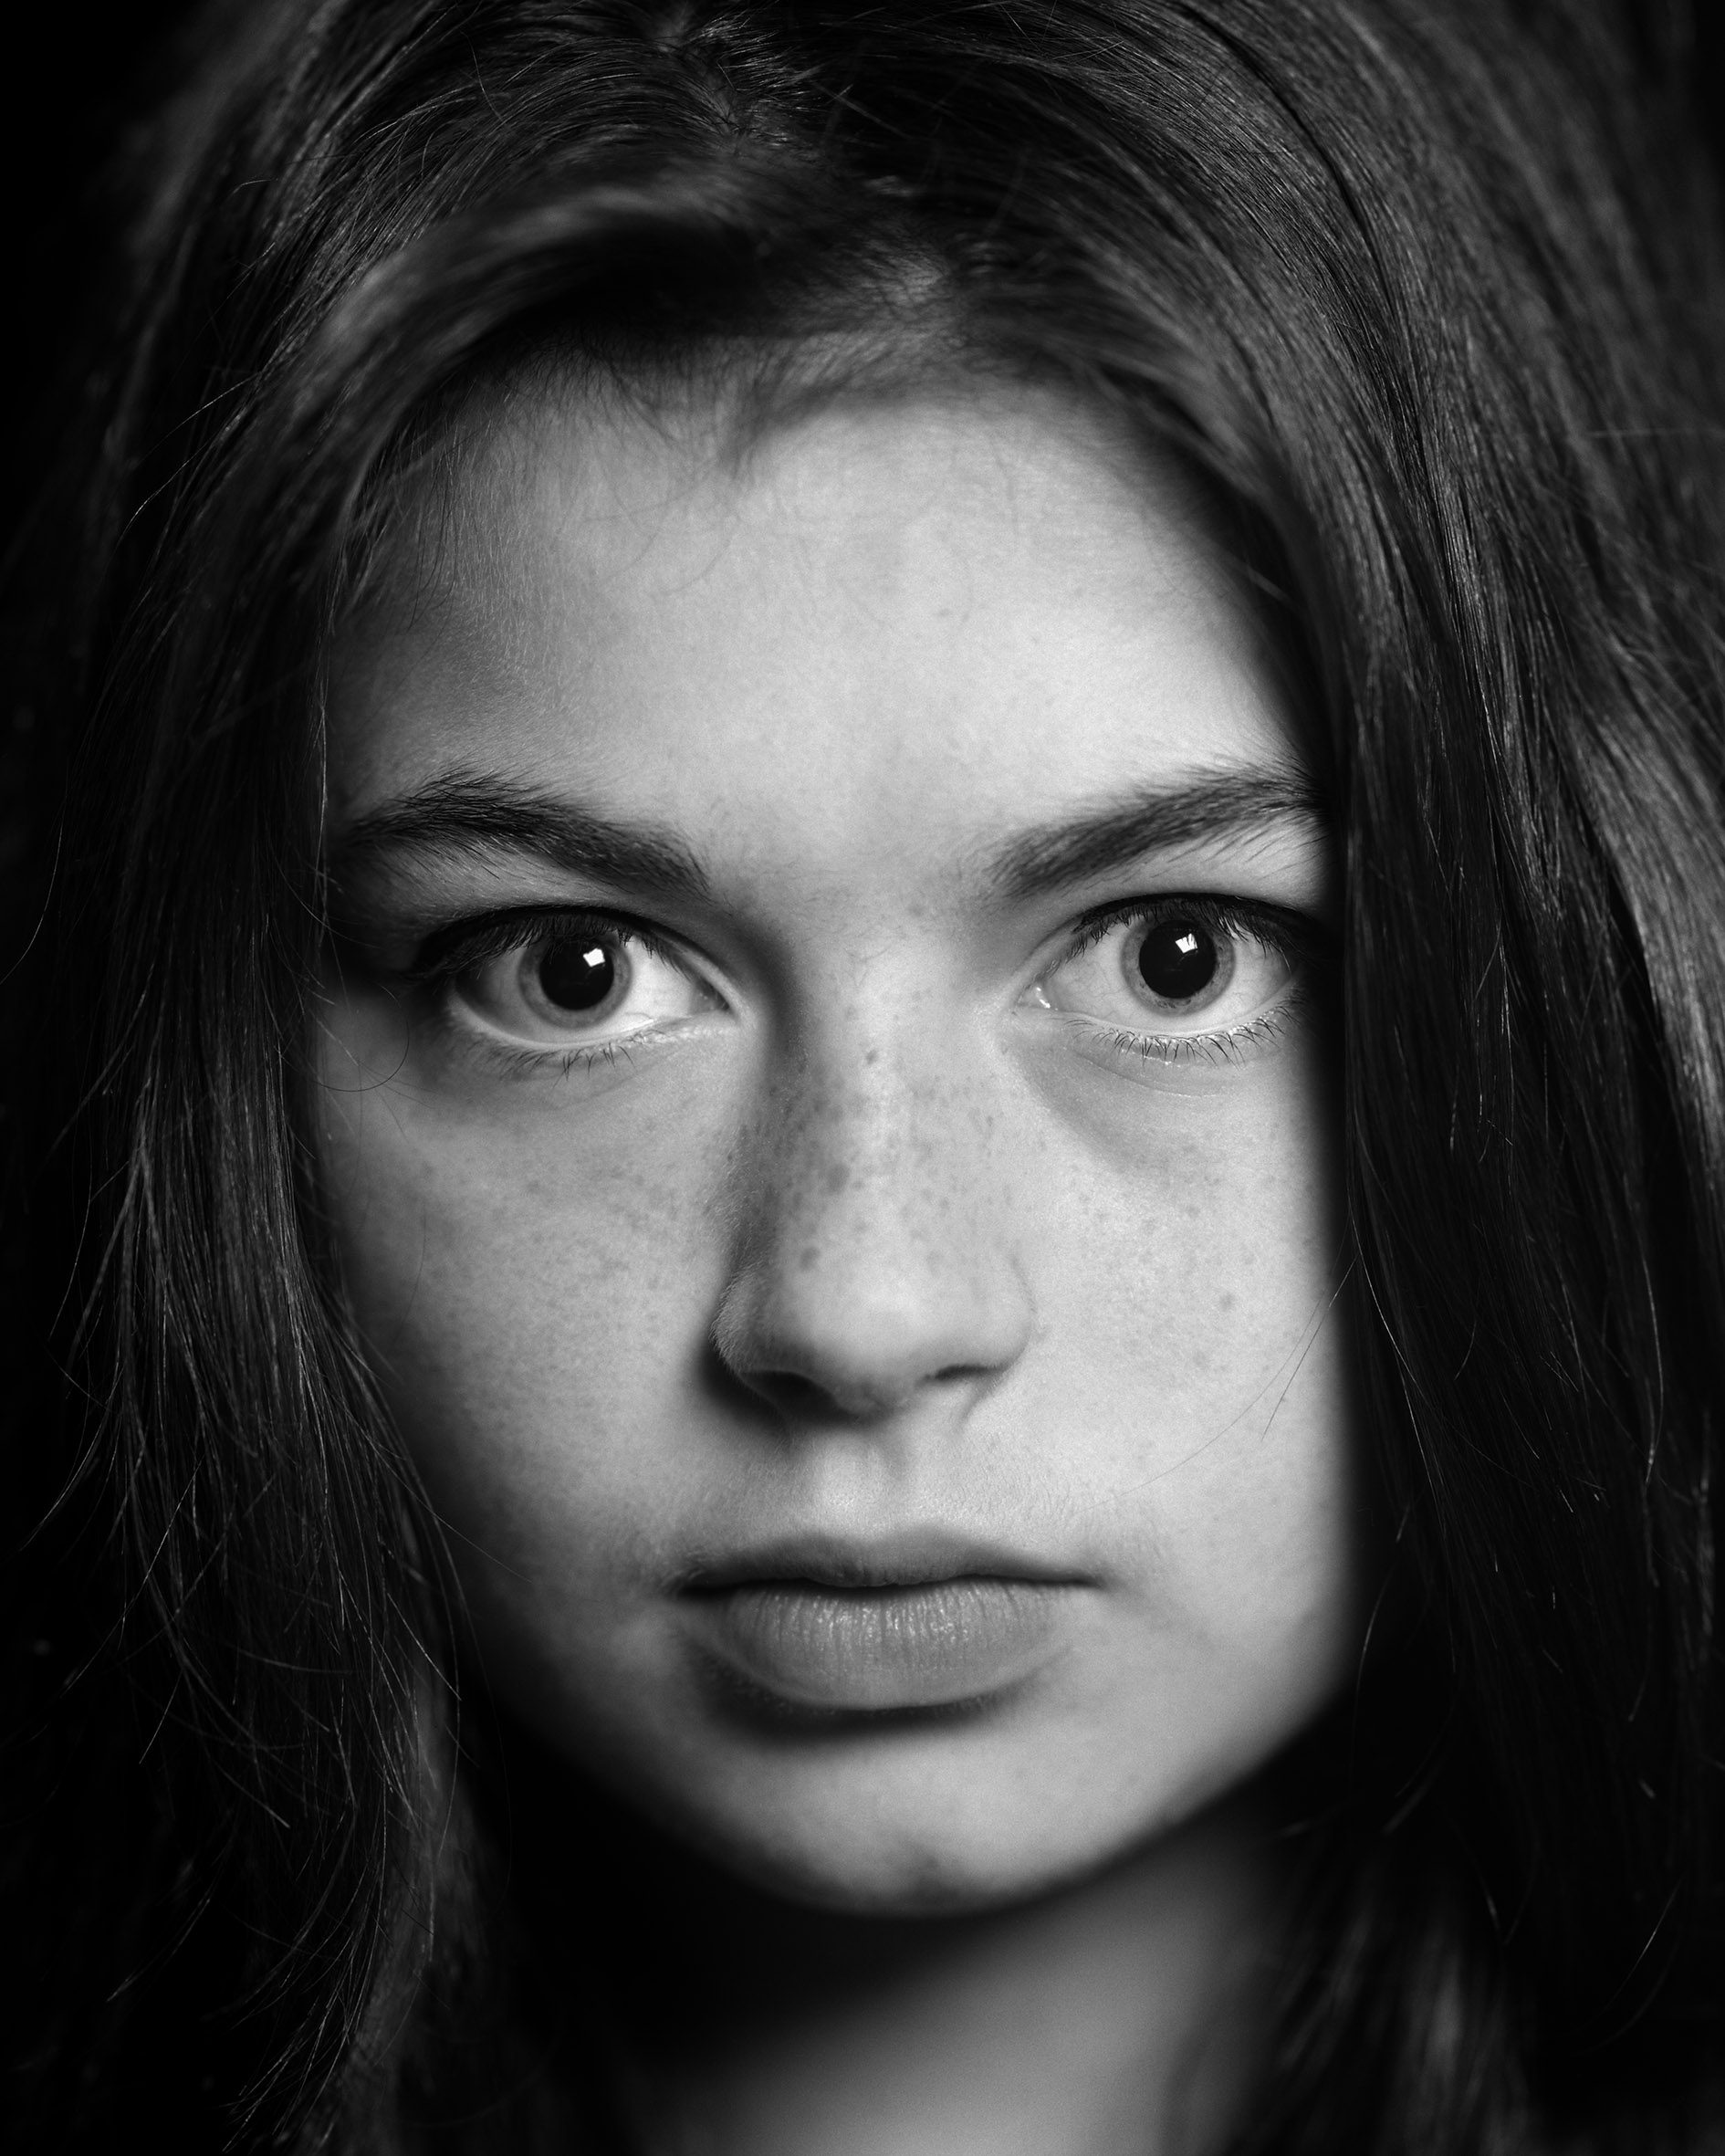 Black and white large format portrait show on ILFORD FP4+ film by Peter Defty as ppart of The Outlaw Project shooting portraits with a large format camera